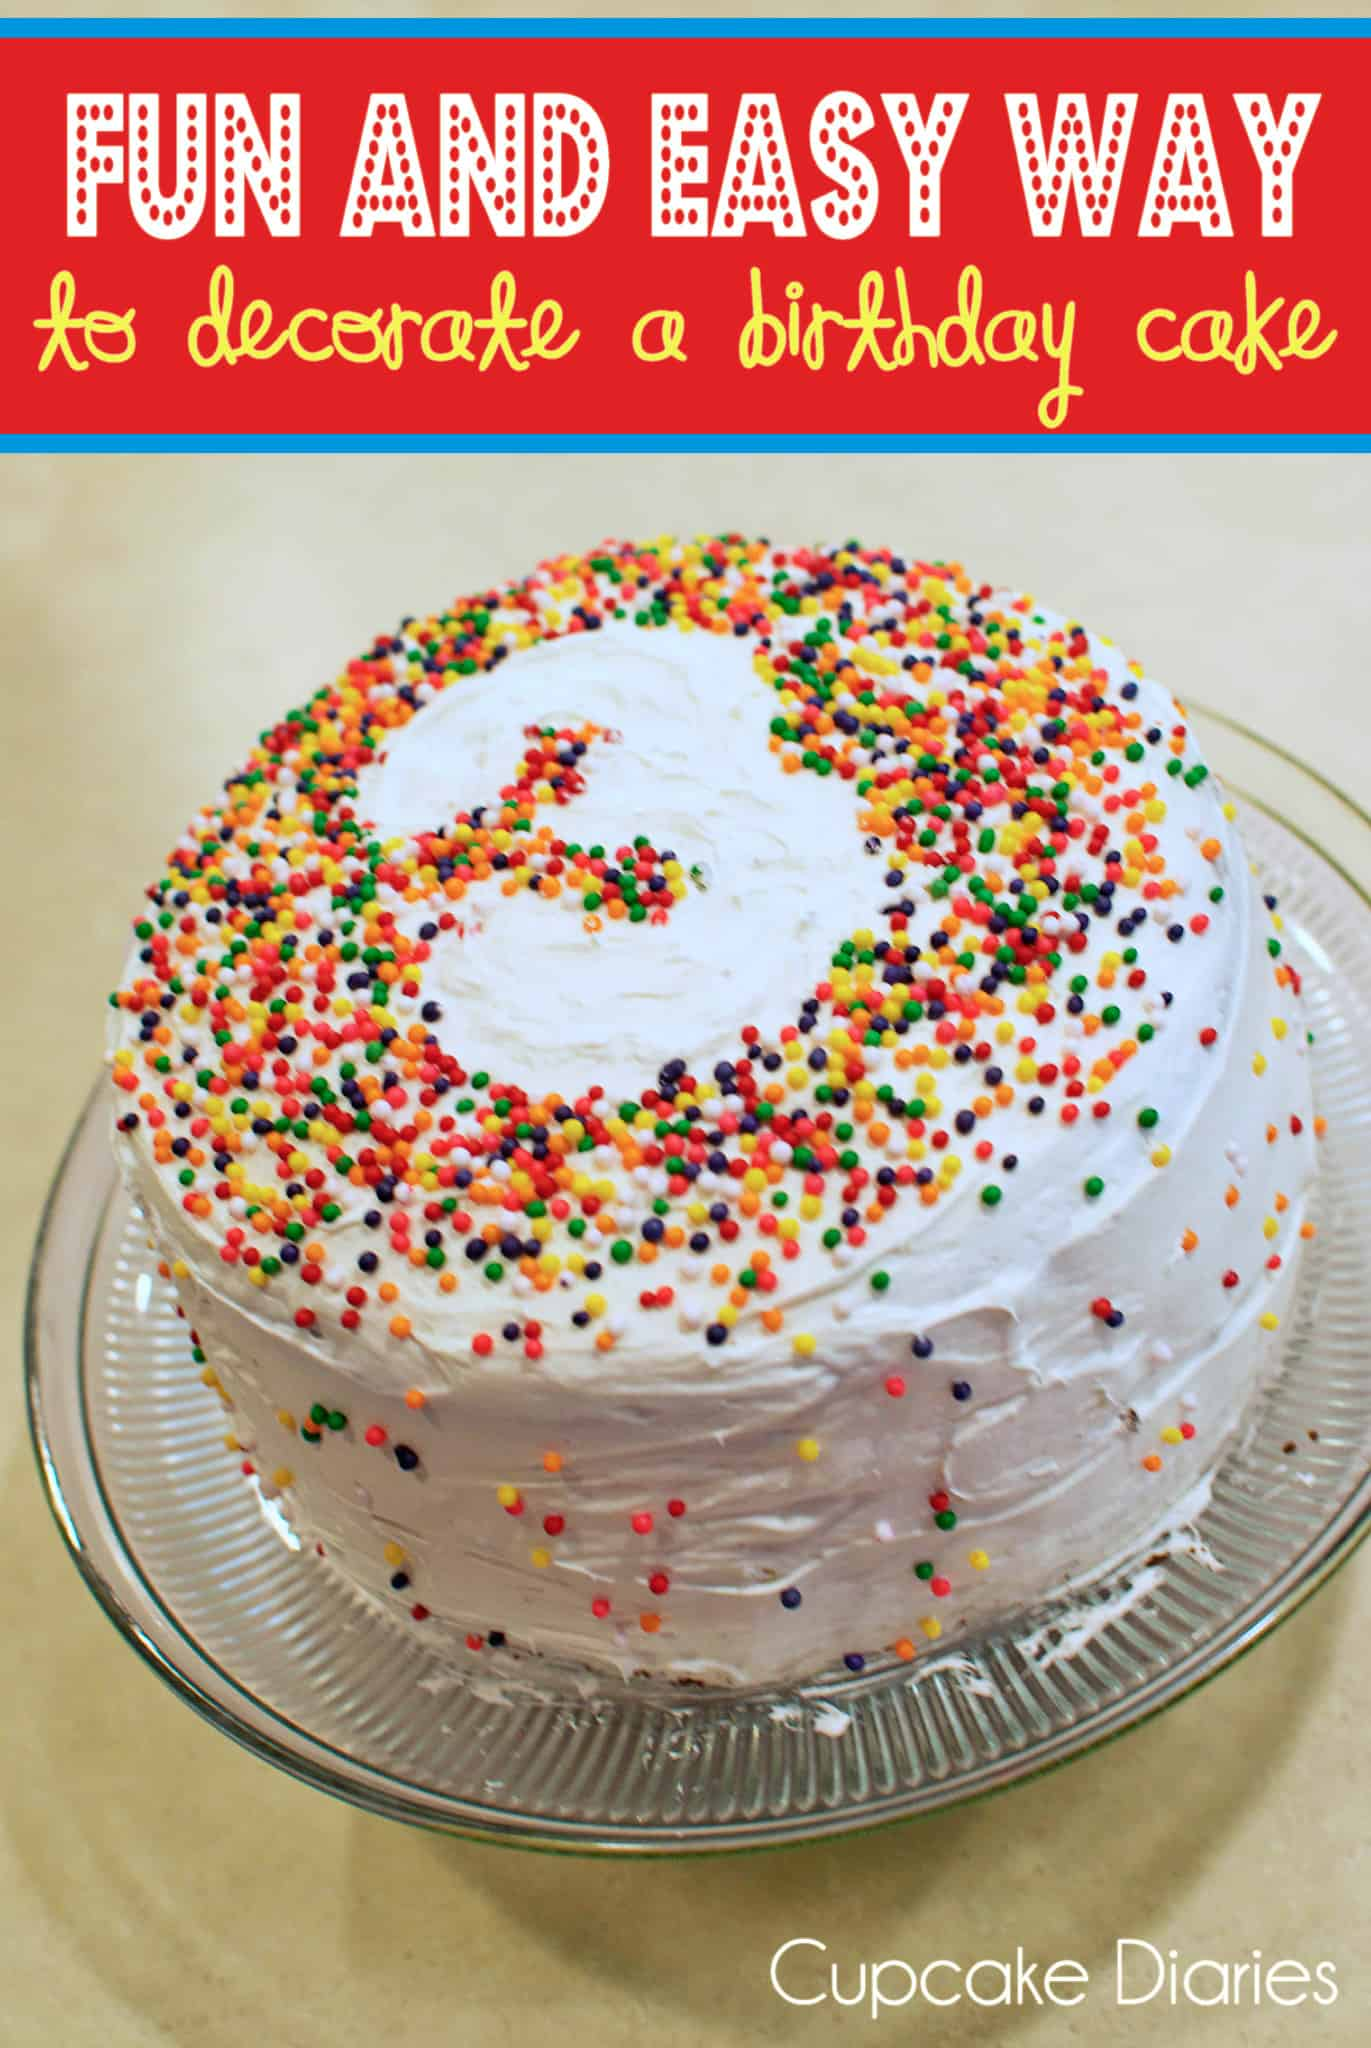 Simple Birthday Cake Decoration At Home : Fun and Easy Way to Decorate a Birthday Cake - Cupcake Diaries